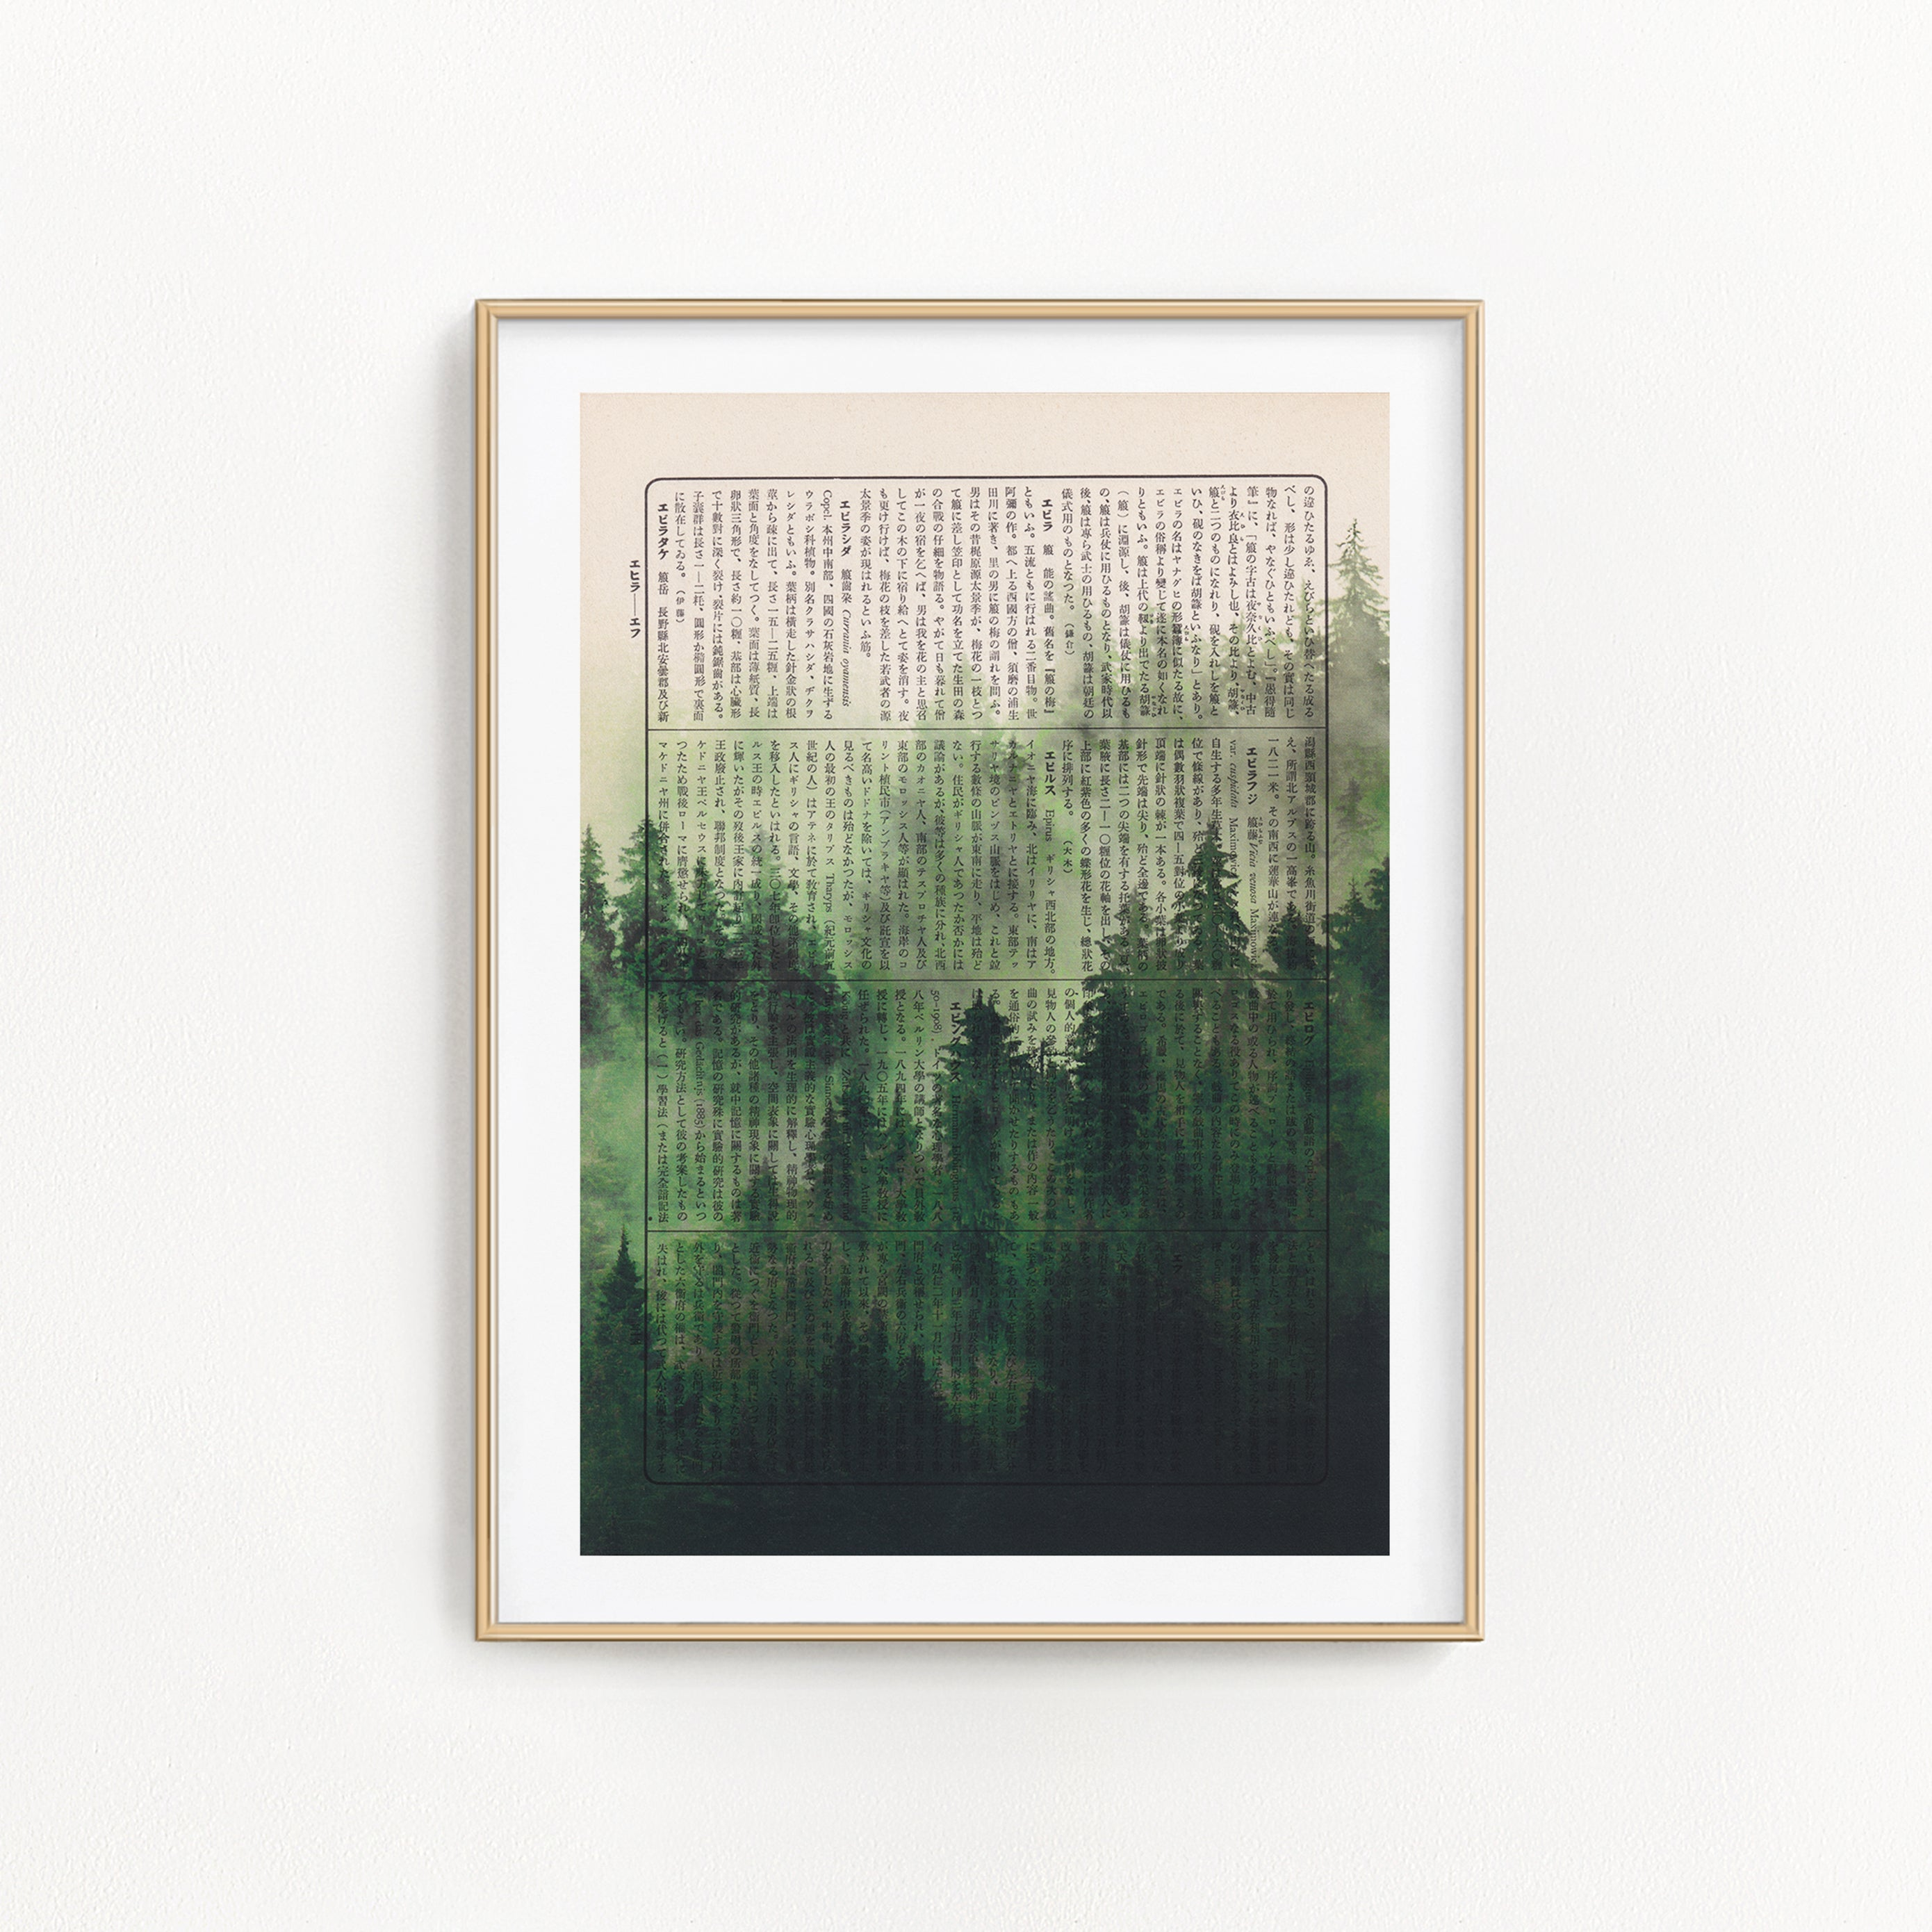 Japanese Misty Forest - Art on Words